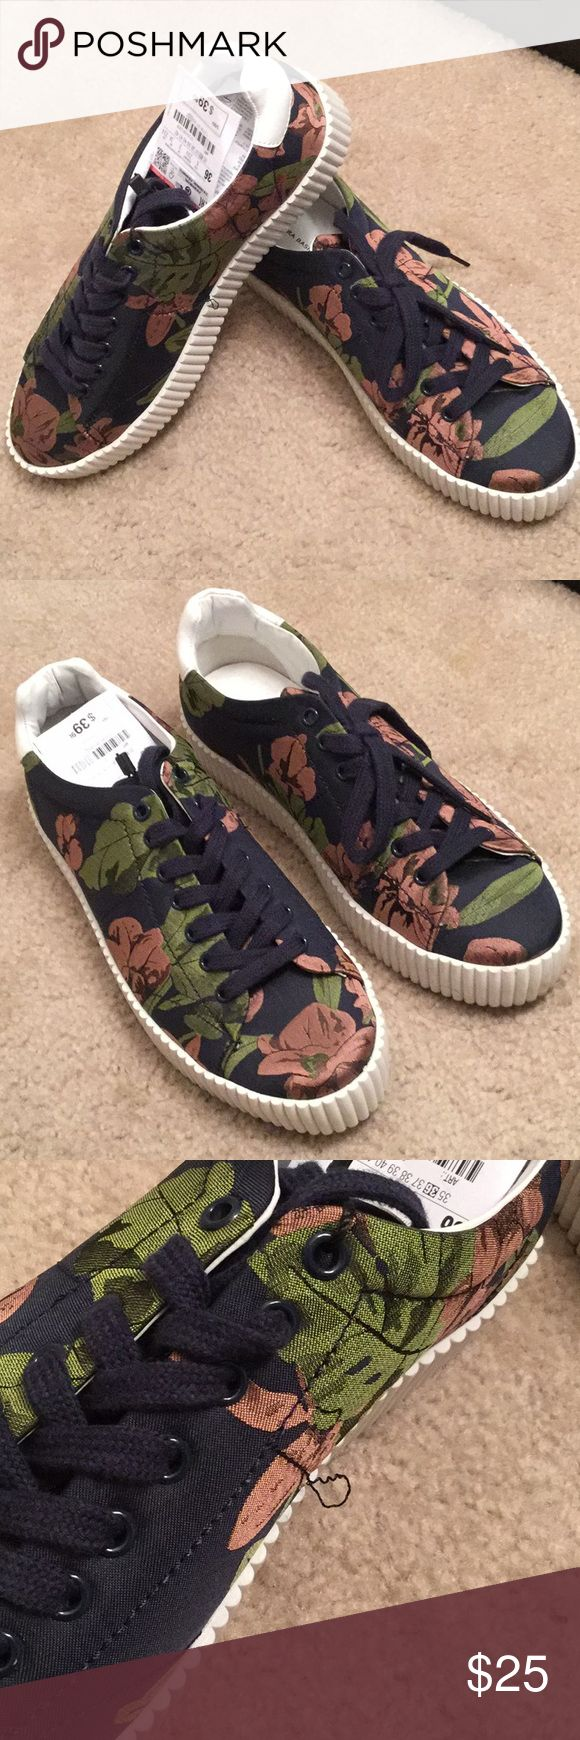 Zara Basic Collection Floral Sneakers - 6 Zara Basic Collection Floral Sneakers - 6. EURO 36 / UK 3 / BR 34 / MEX 23.5. Navy with rose and green floral design. Small seam out on inner right shoe (see last picture) Zara Shoes